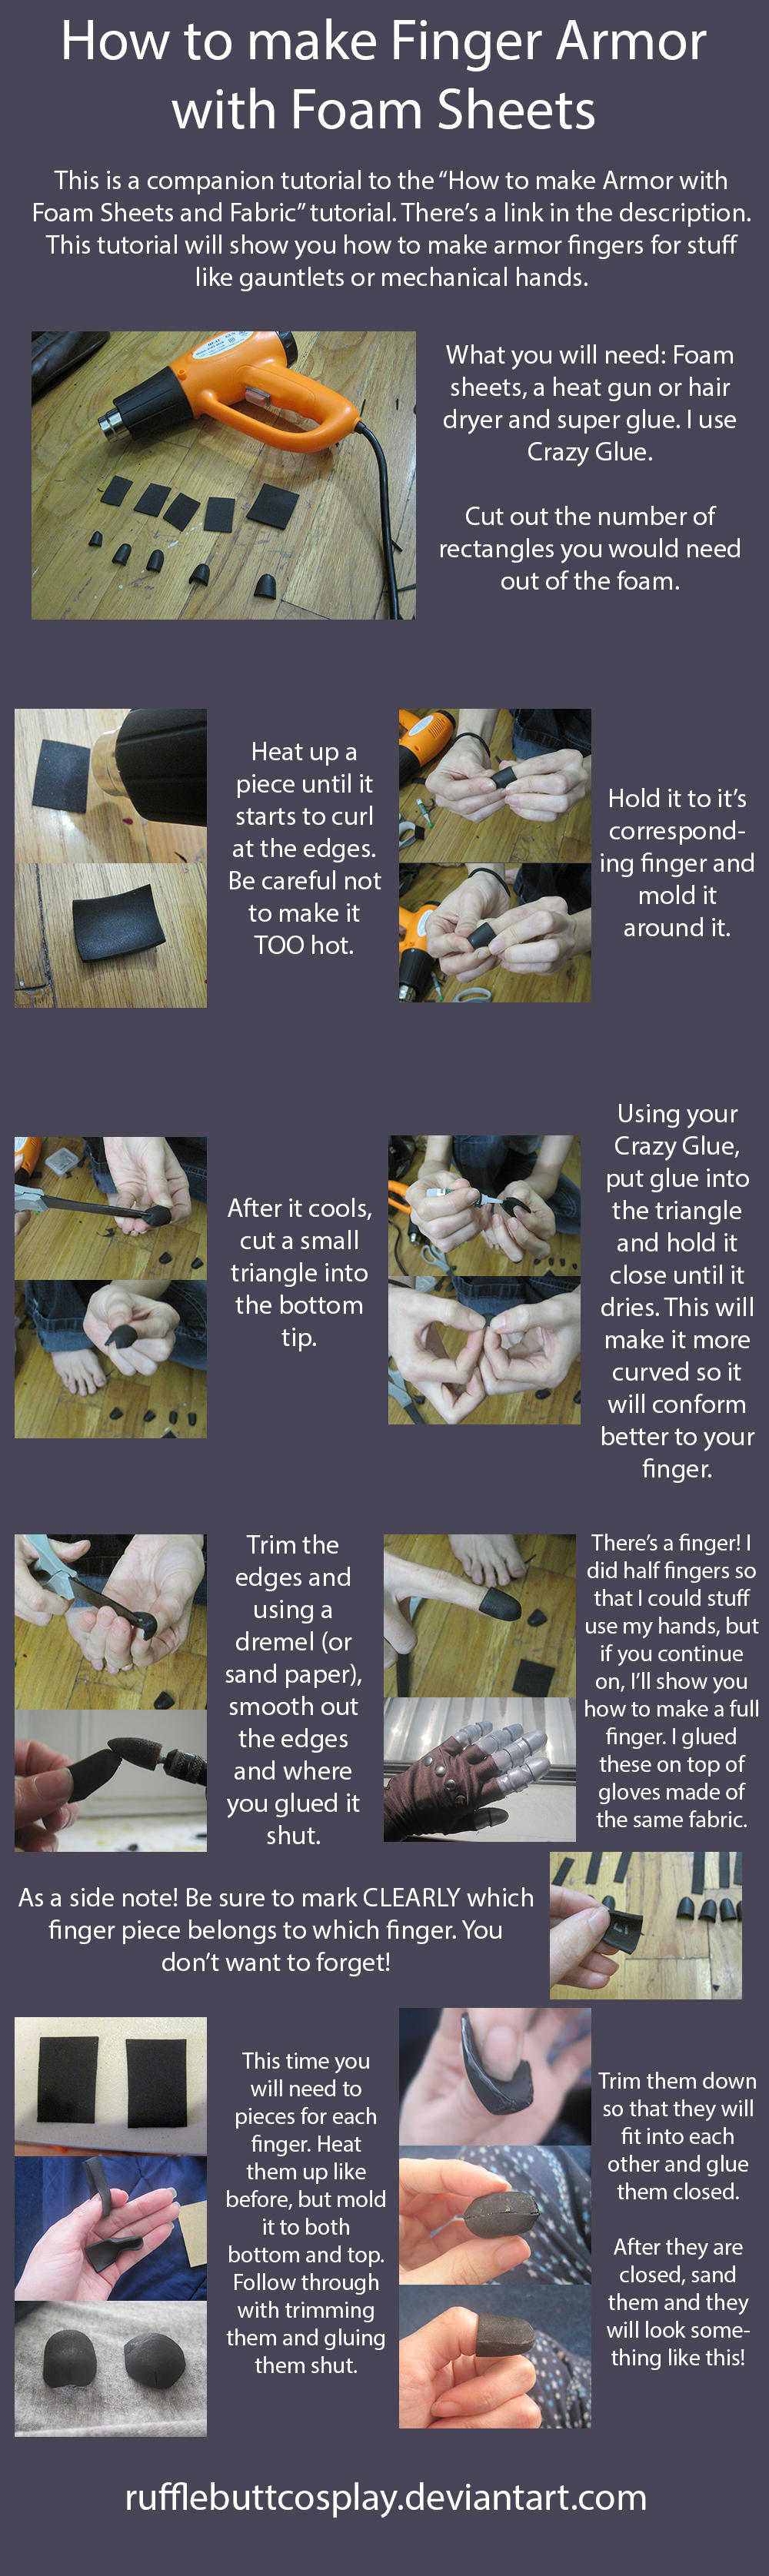 How to make Finger Armor with Foam Sheets by RuffleButtCosplay